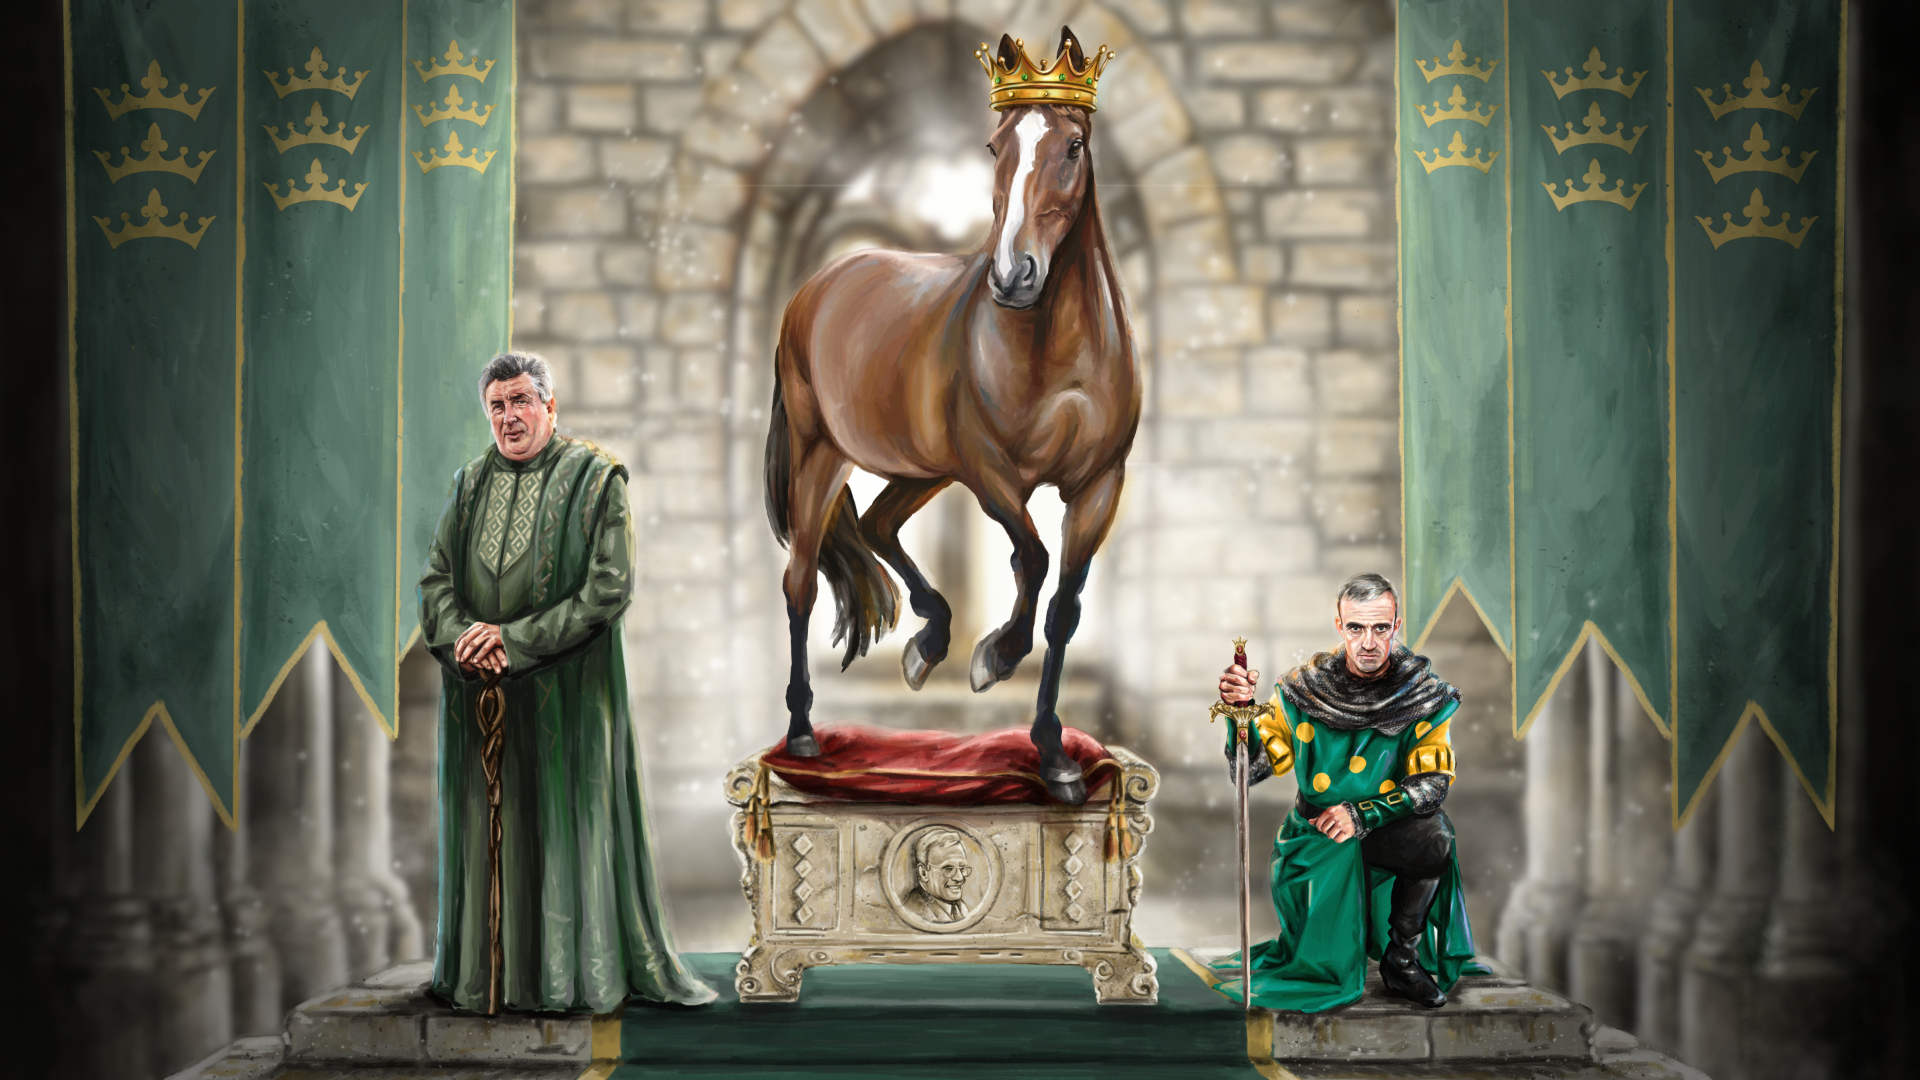 Artist Phil Galloway depicts Kauto Star as having been crowned the King of Jump Racing